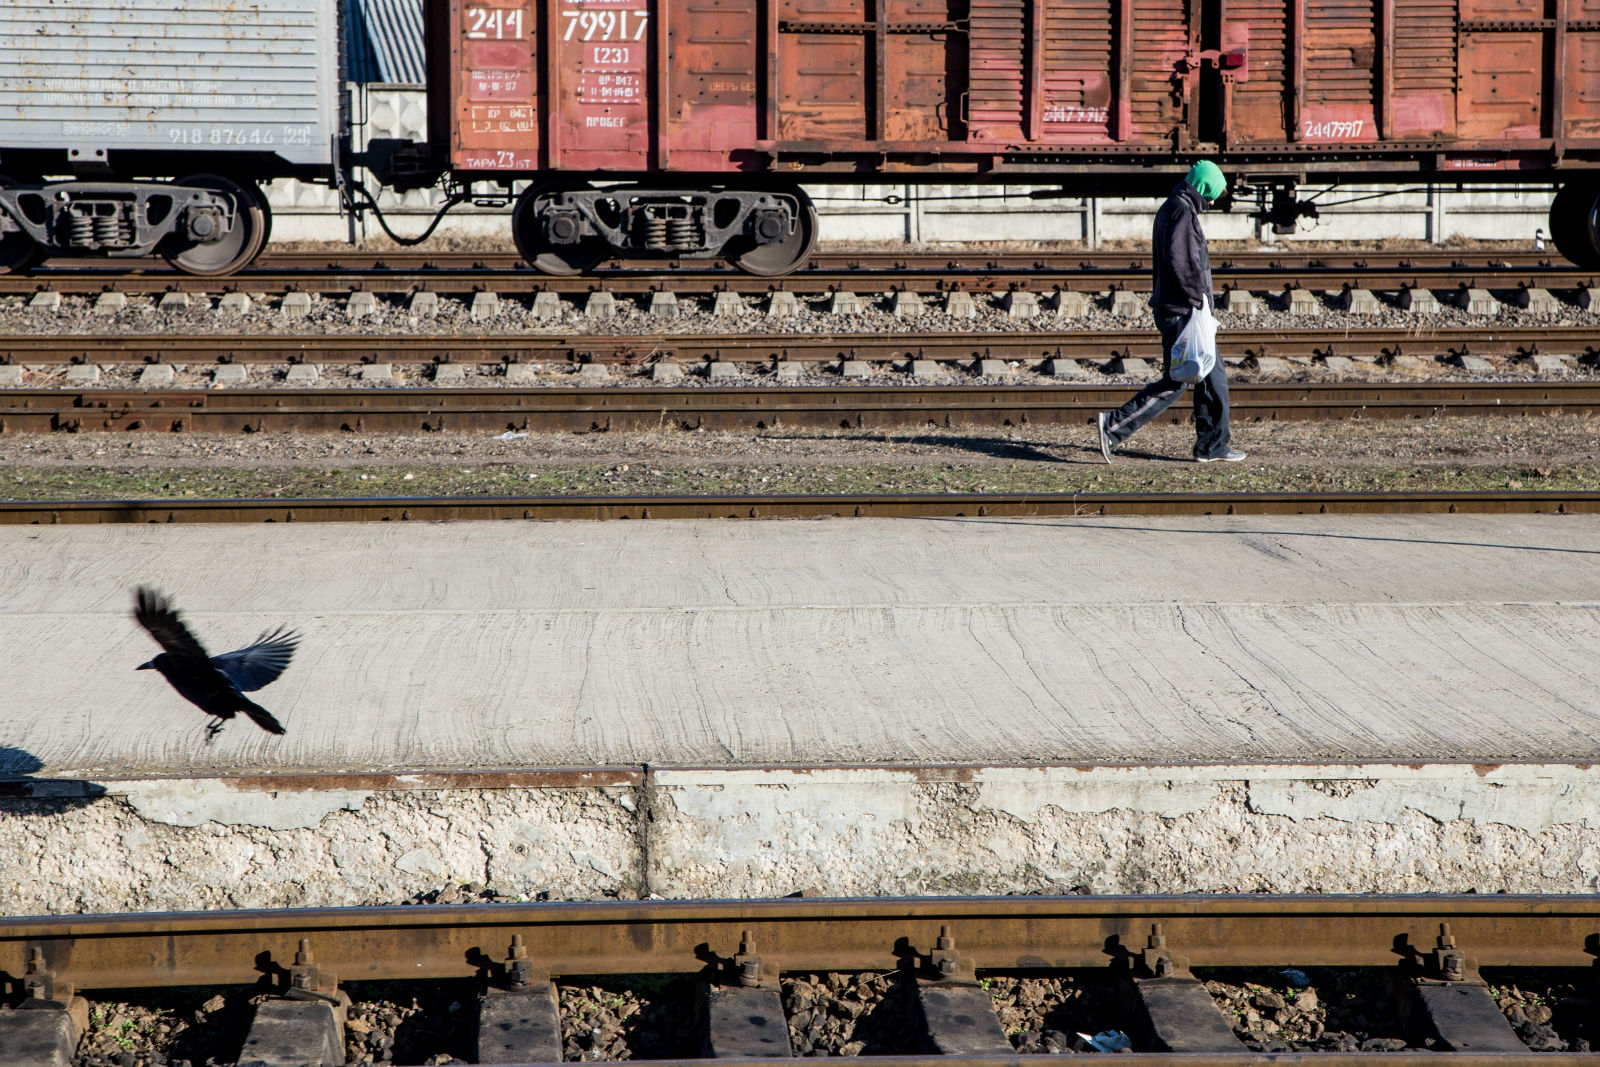 A man walks by the central railway station in Chișinău